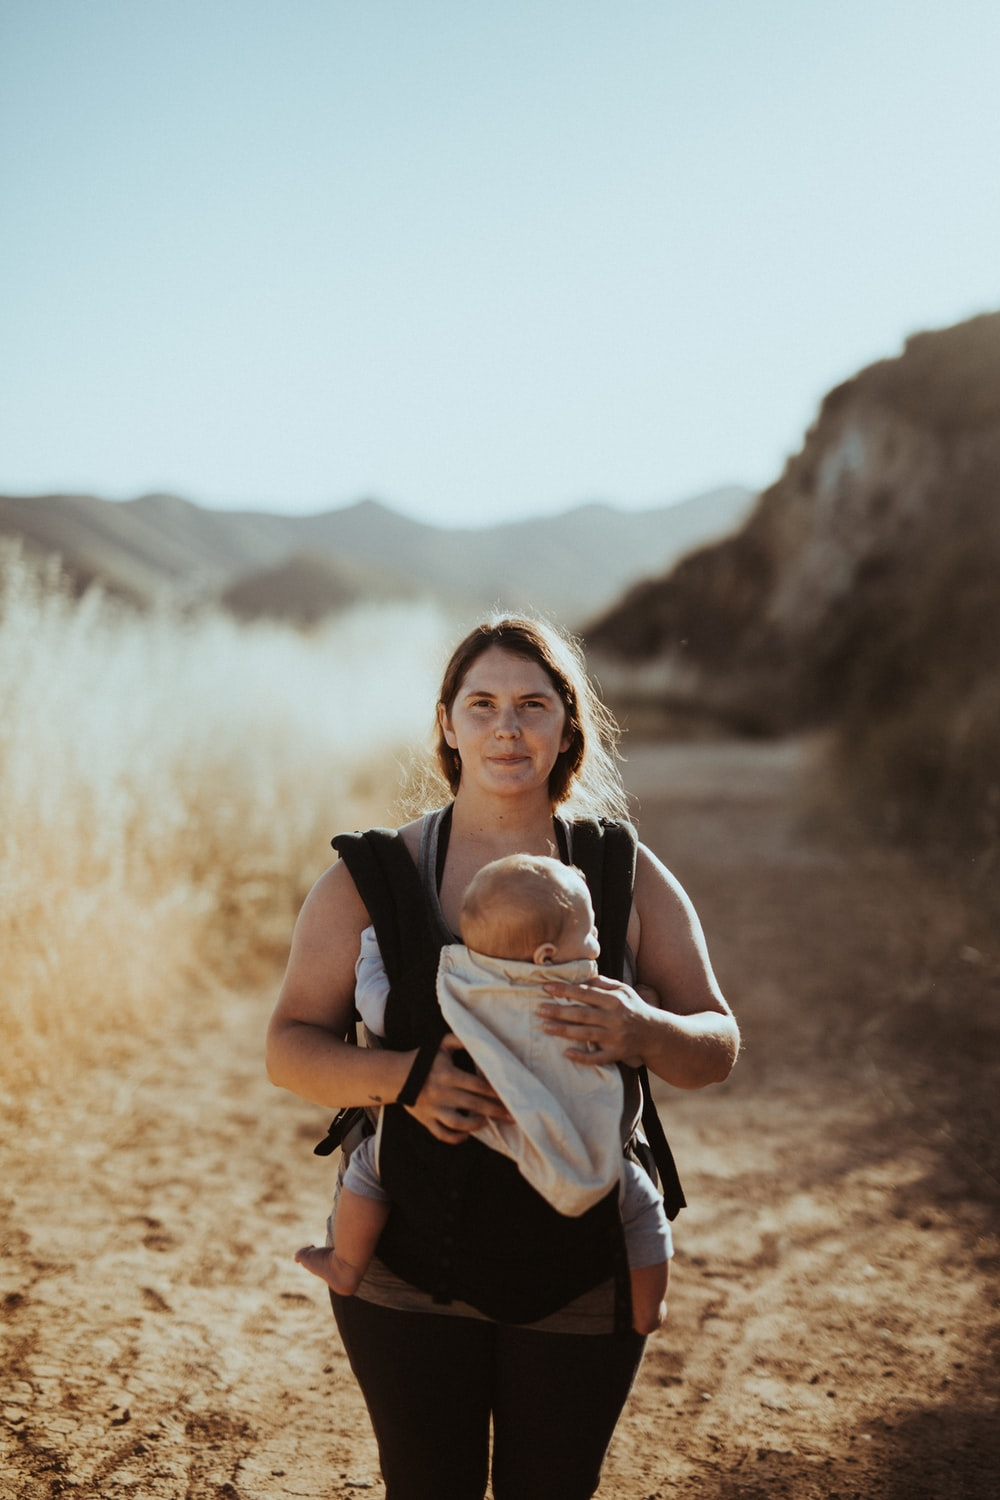 woman in black tank top carrying baby